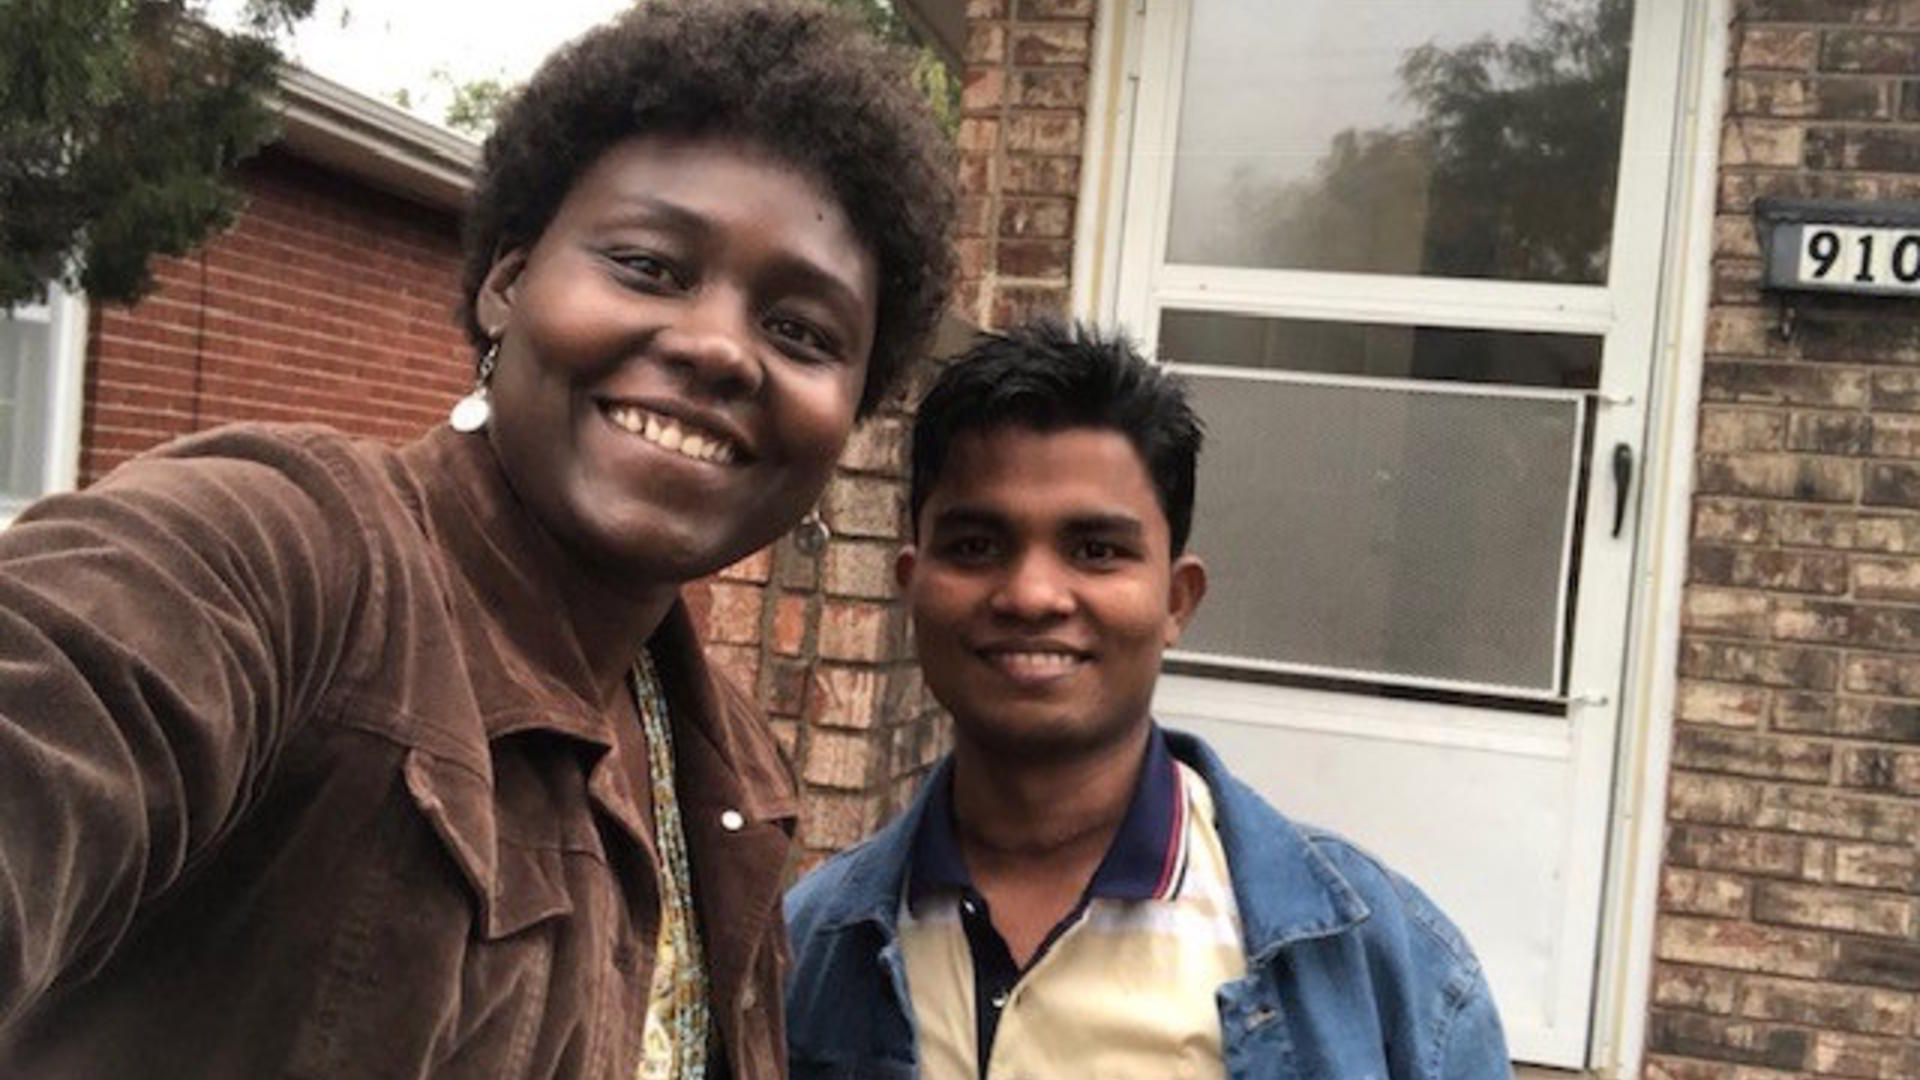 IRC staff member Amy Longa with Nor Kamel, a 19-year-old Rohingya refugee from Myanmar (Burma)